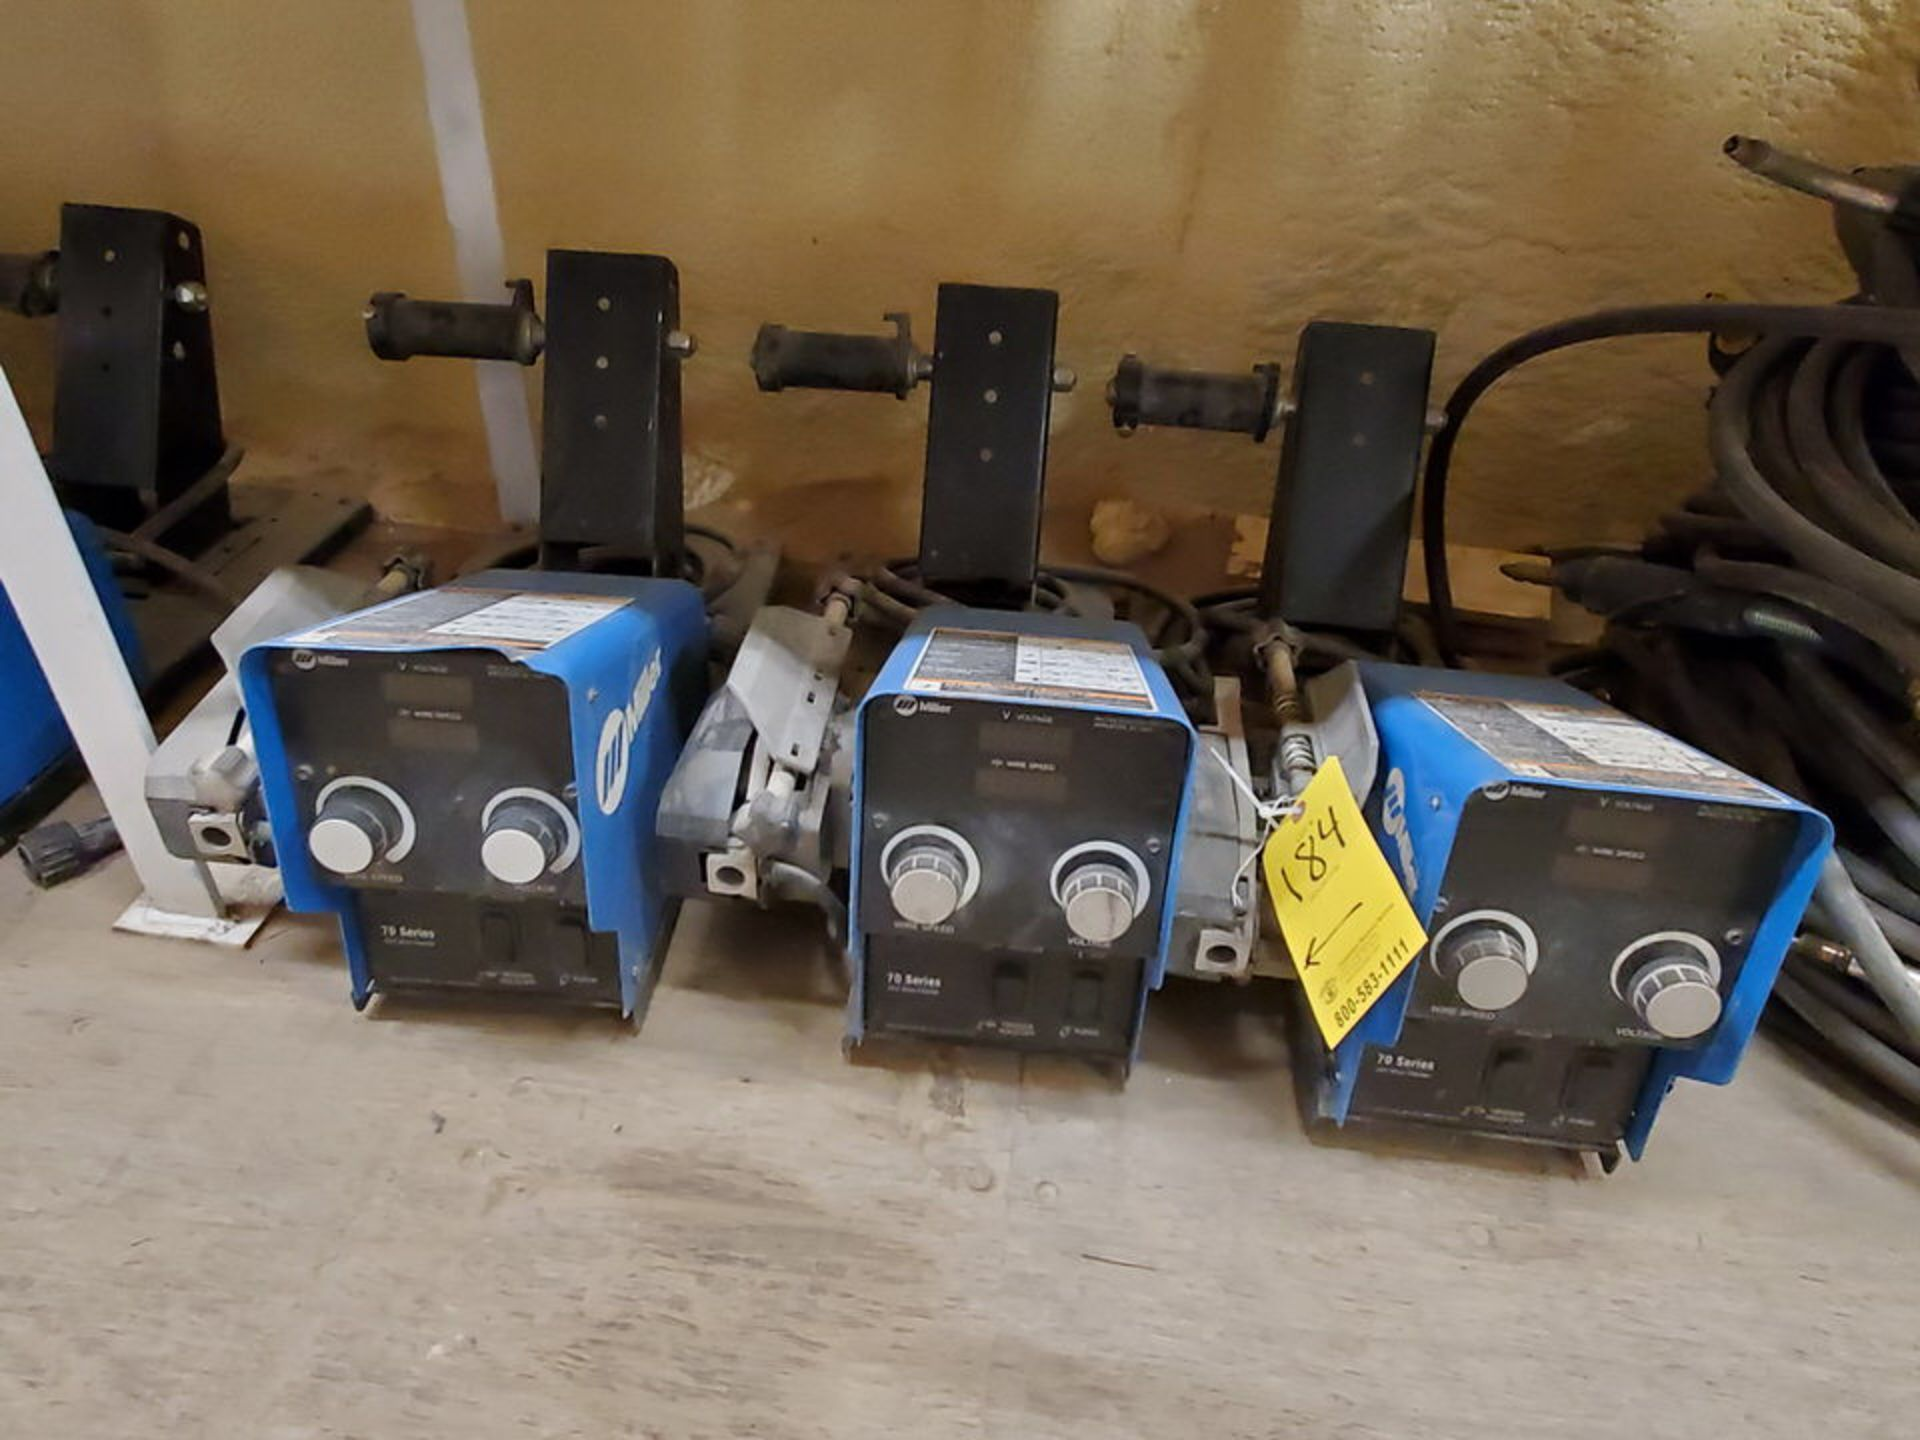 Miller 70 Series (9) 24V Wire Feeders W/ (1) 22A 24V Wire Feeder - Image 3 of 6